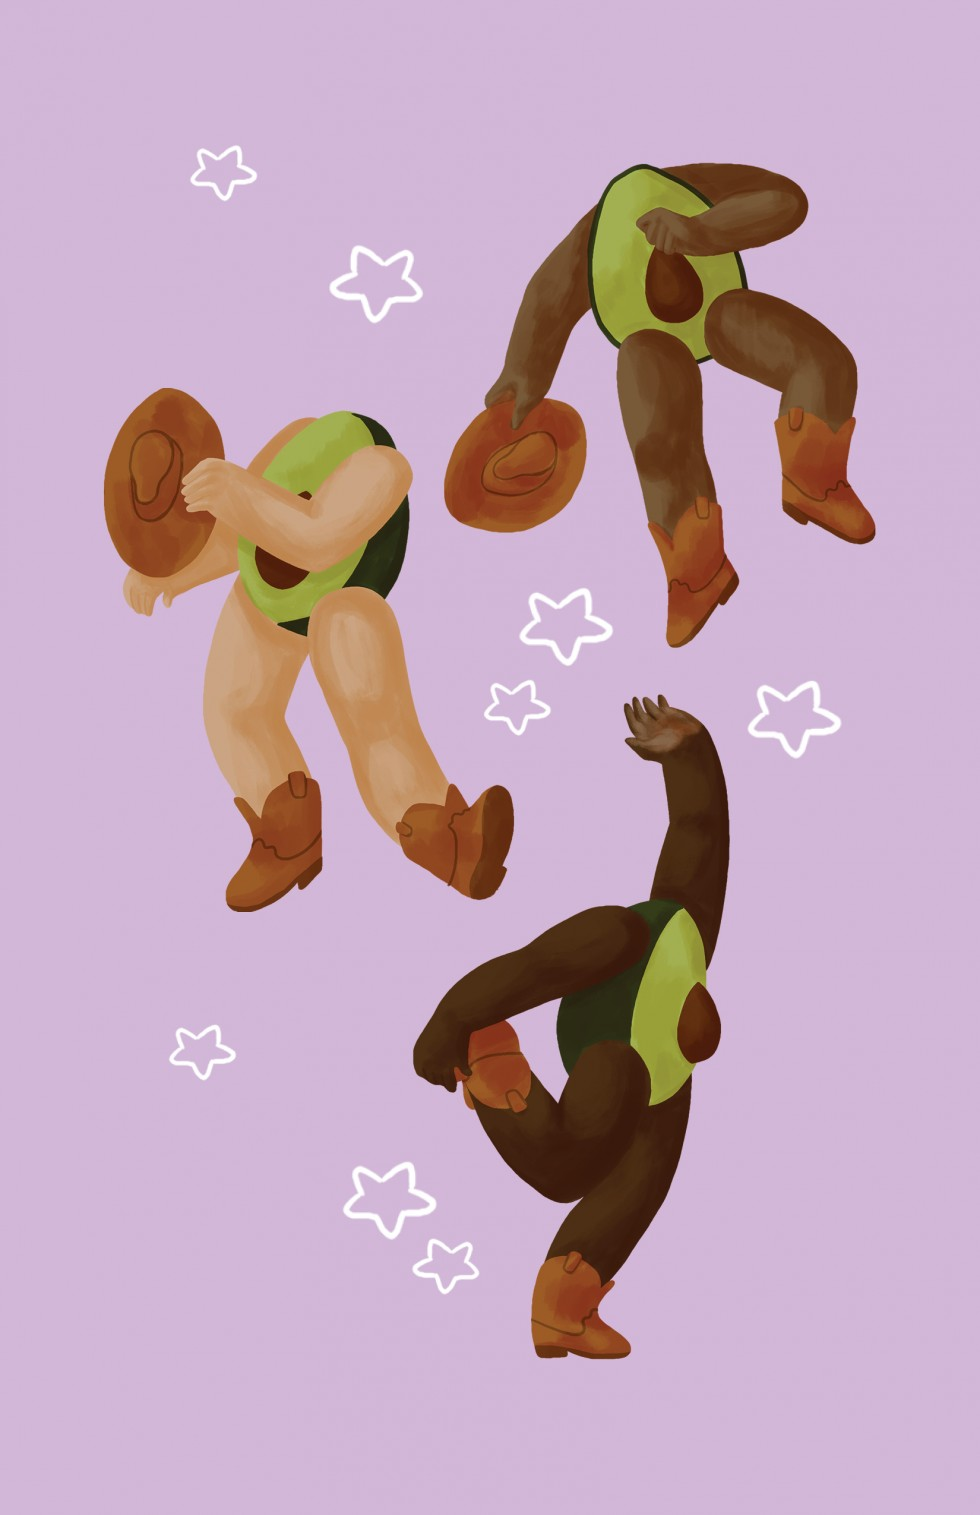 Three avocados with arms and legs wearing cowboy boots and holding cowboy hats are dancing in a country western style on a light purple background. There are white stars from the music pattern surrounding them.